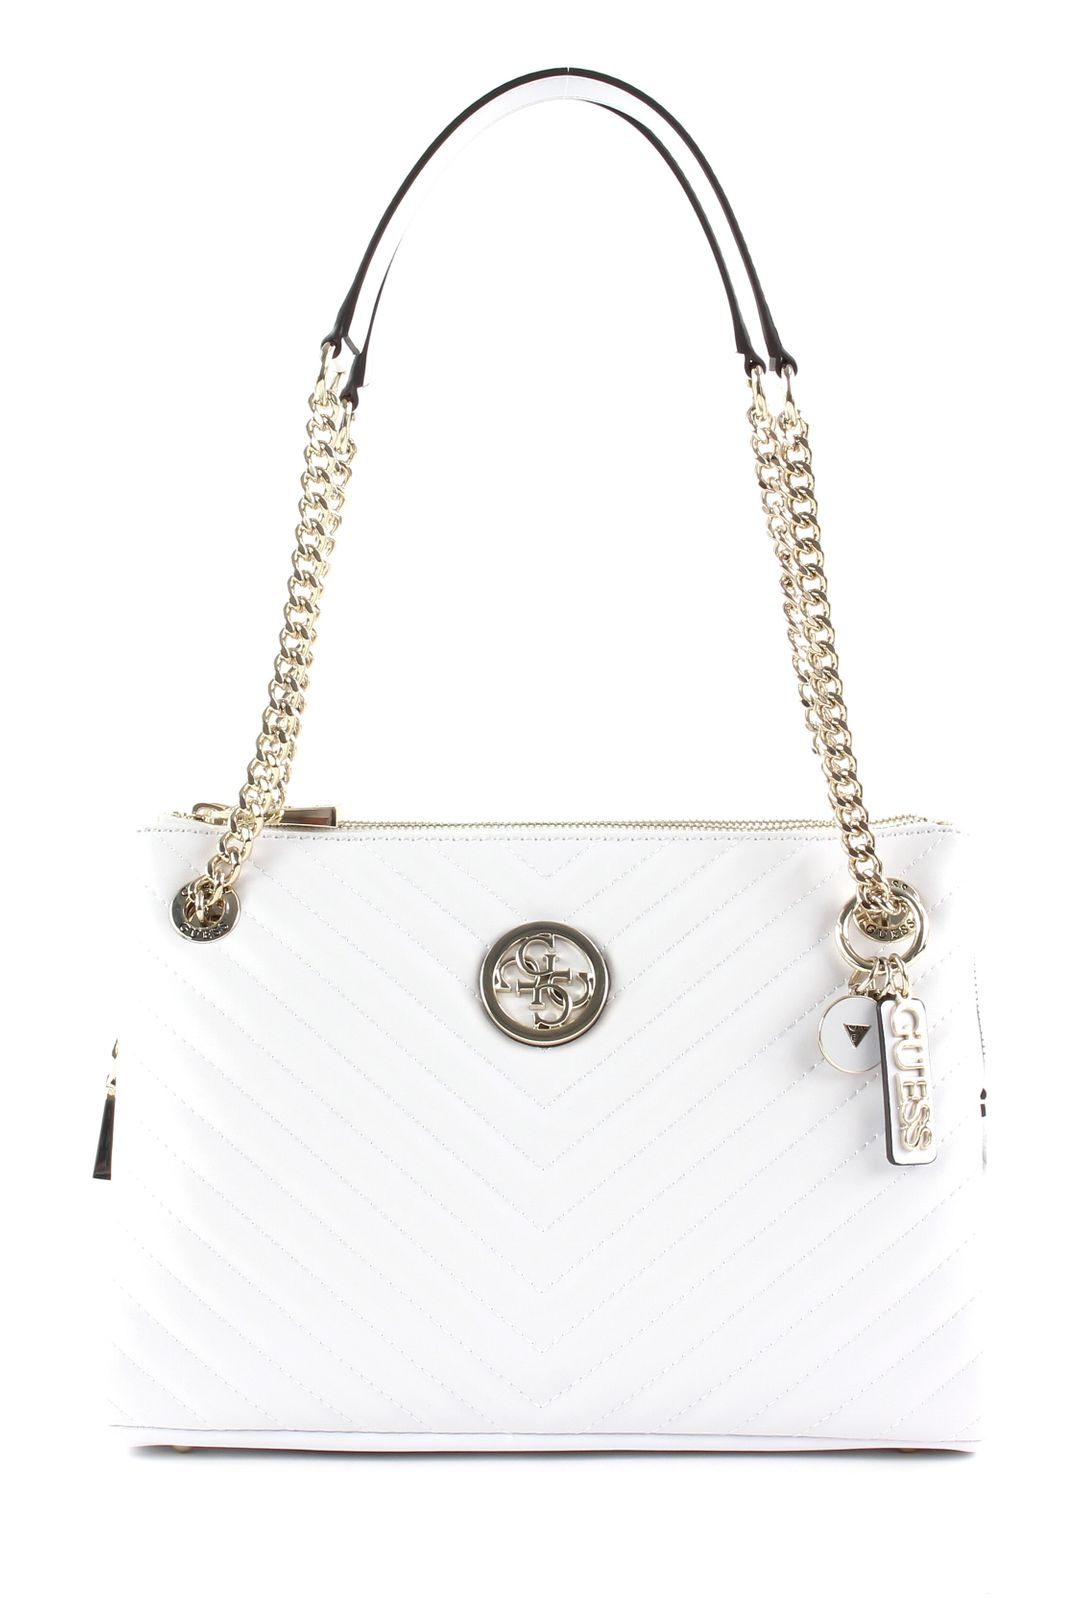 GUESS Blakely Status Luxe Satchel White